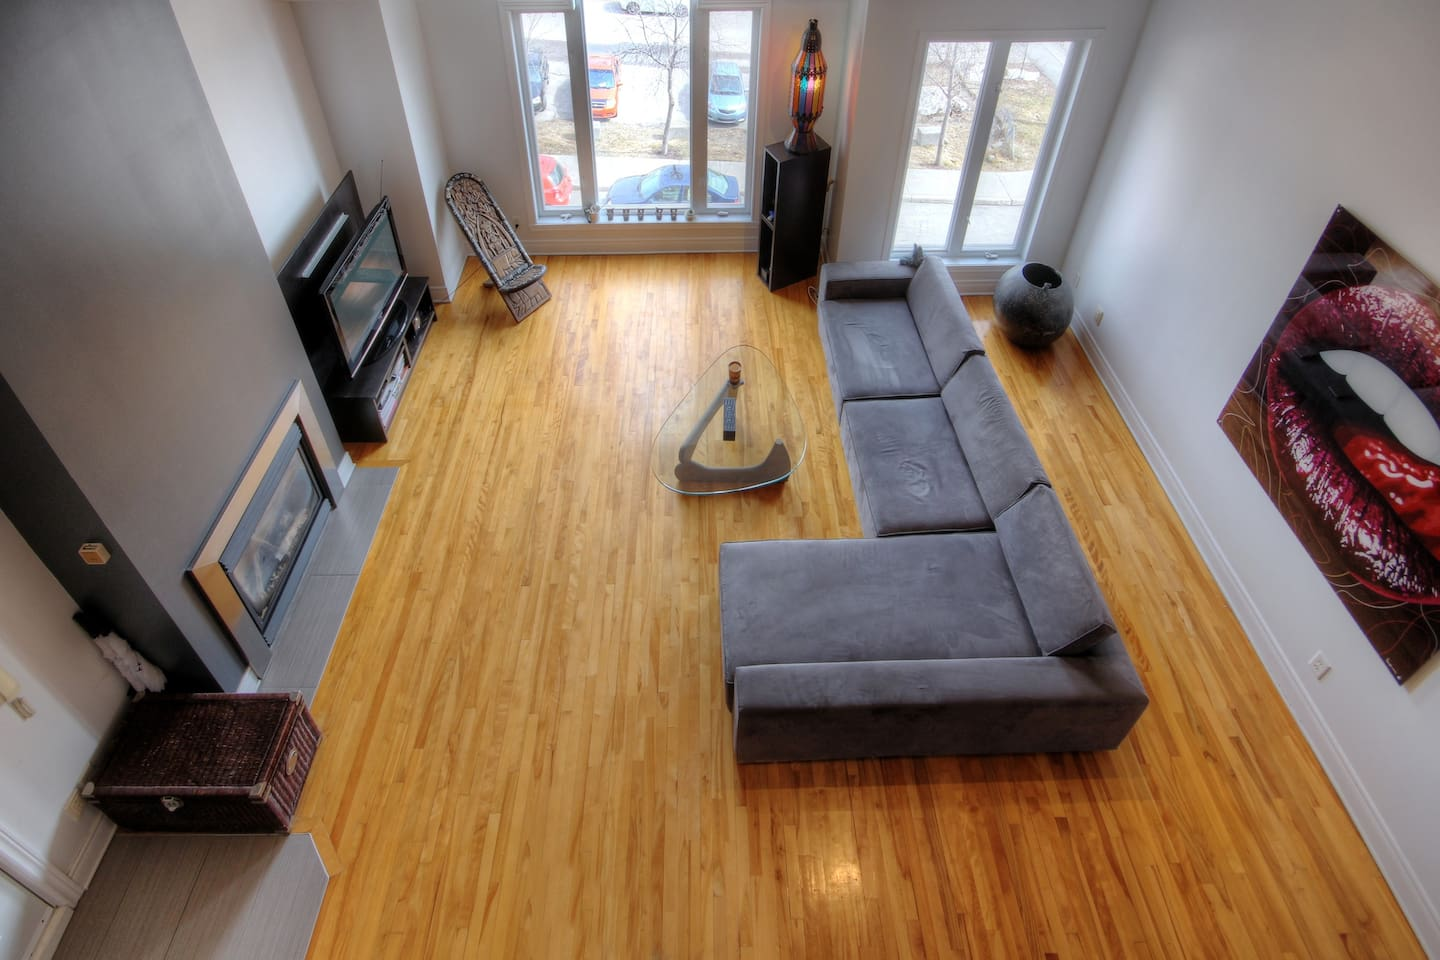 View from mezzanine on living room